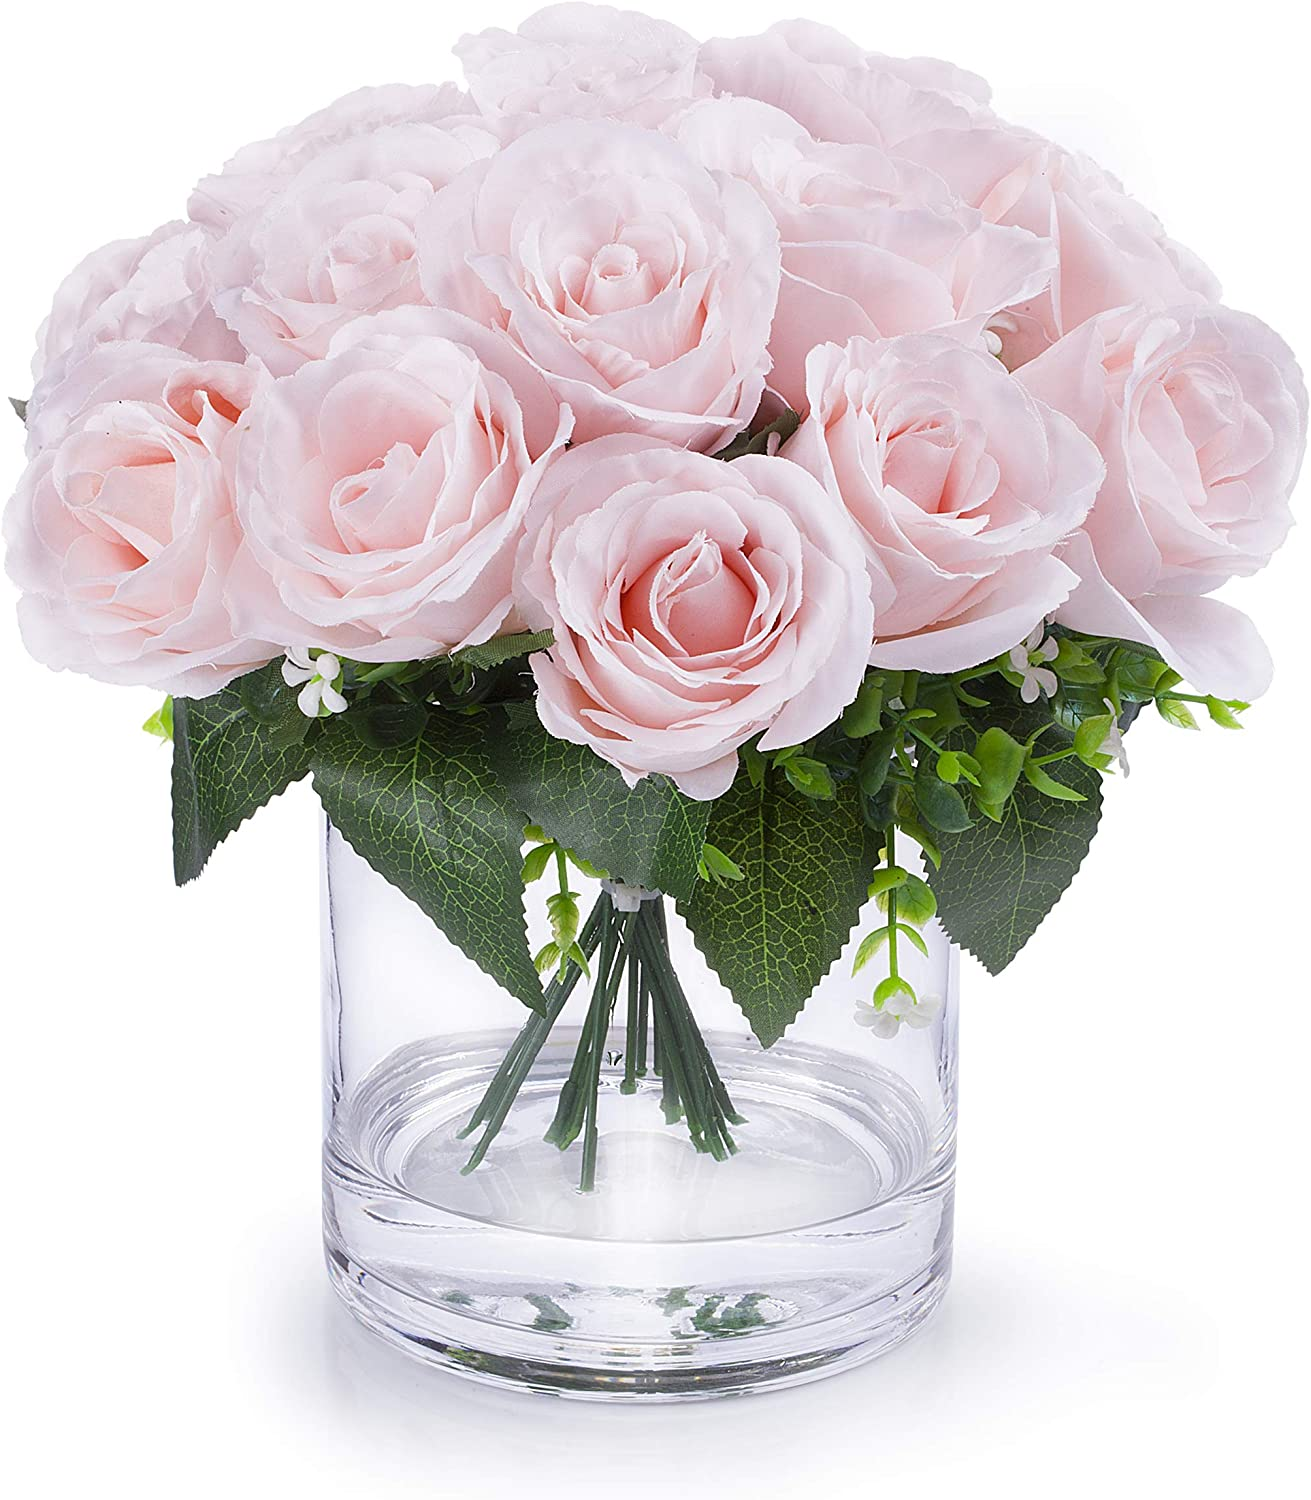 Amazon Com Enova Home Silk Open Rose Flower Arrangement In Clear Glass Vase With Faux Water Pink Home Kitchen